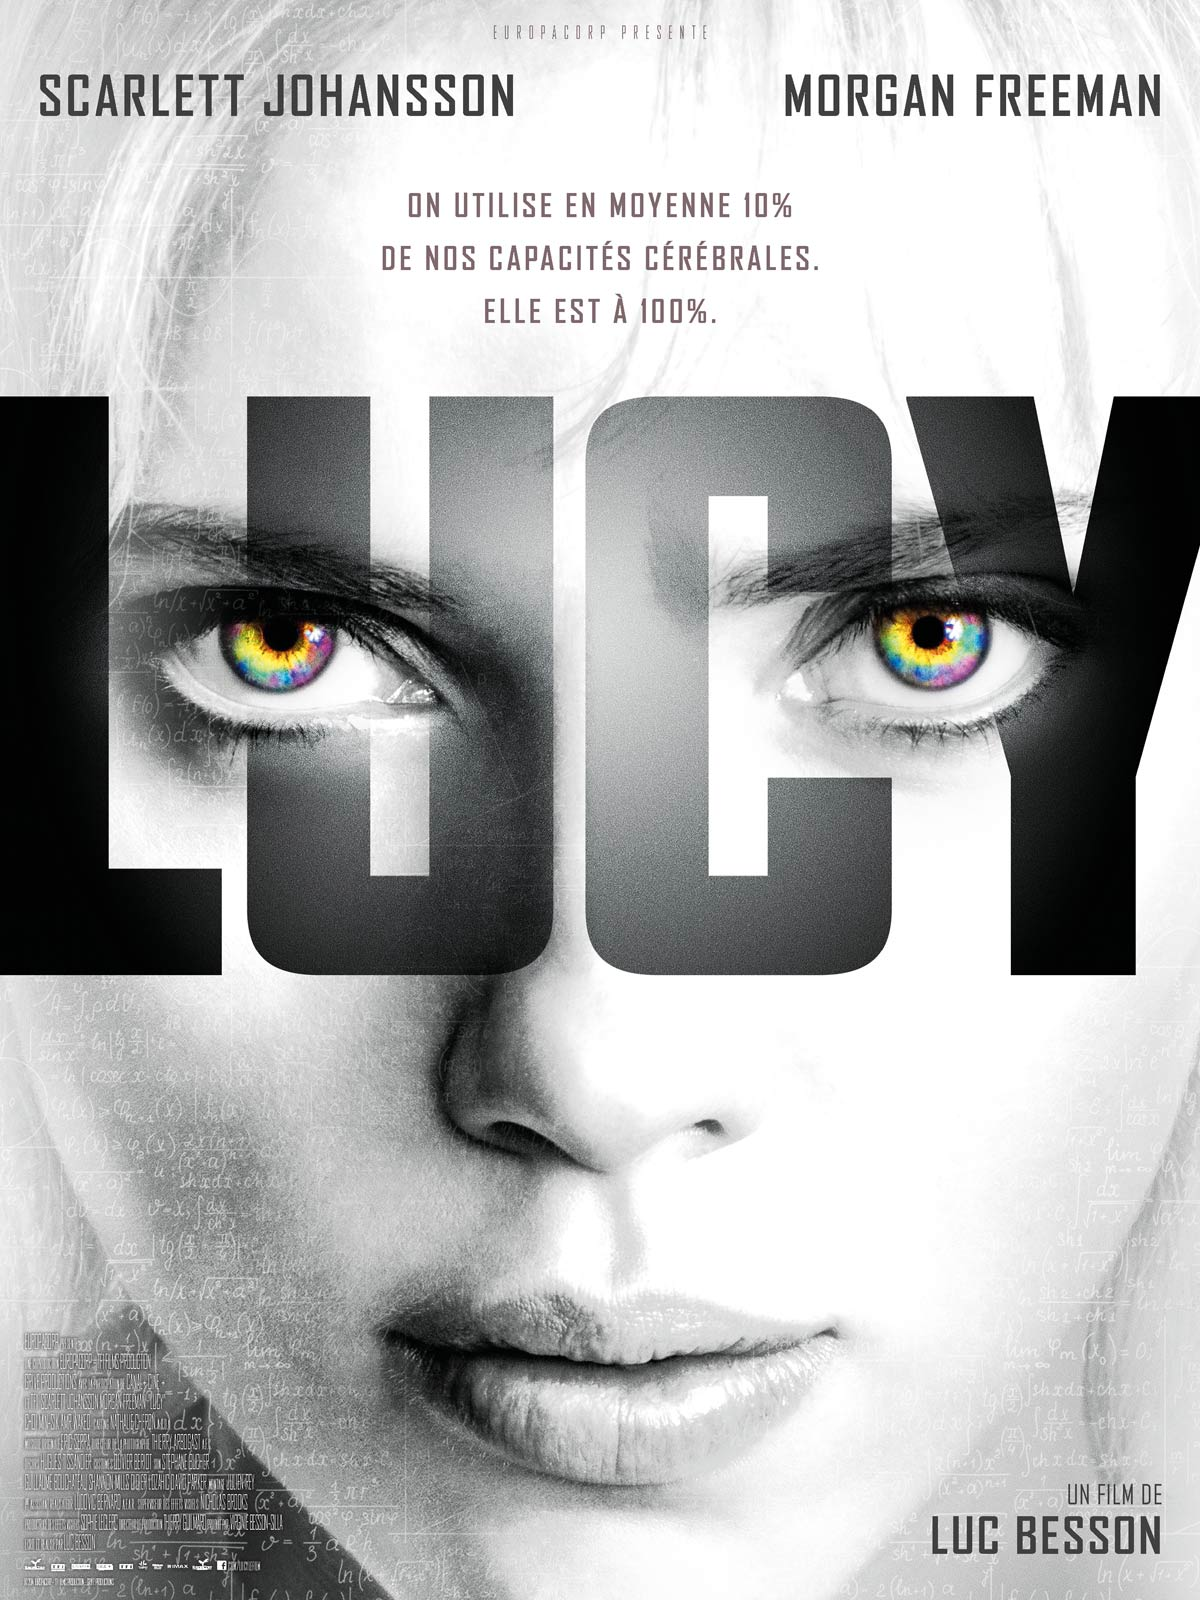 Lucy besson